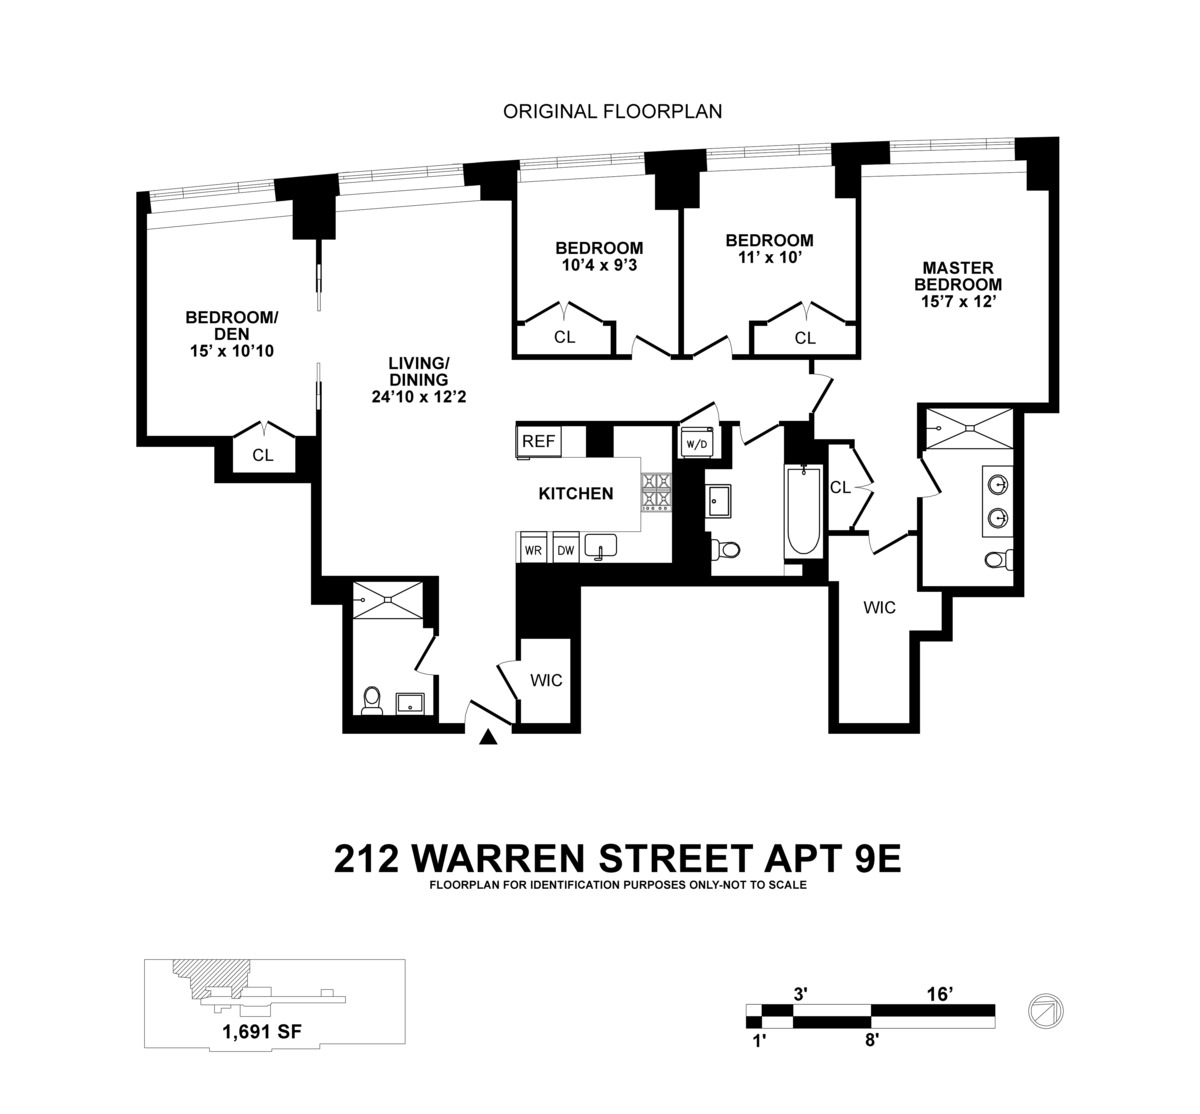 212 Warren Street #9E in Battery Park City, Manhattan